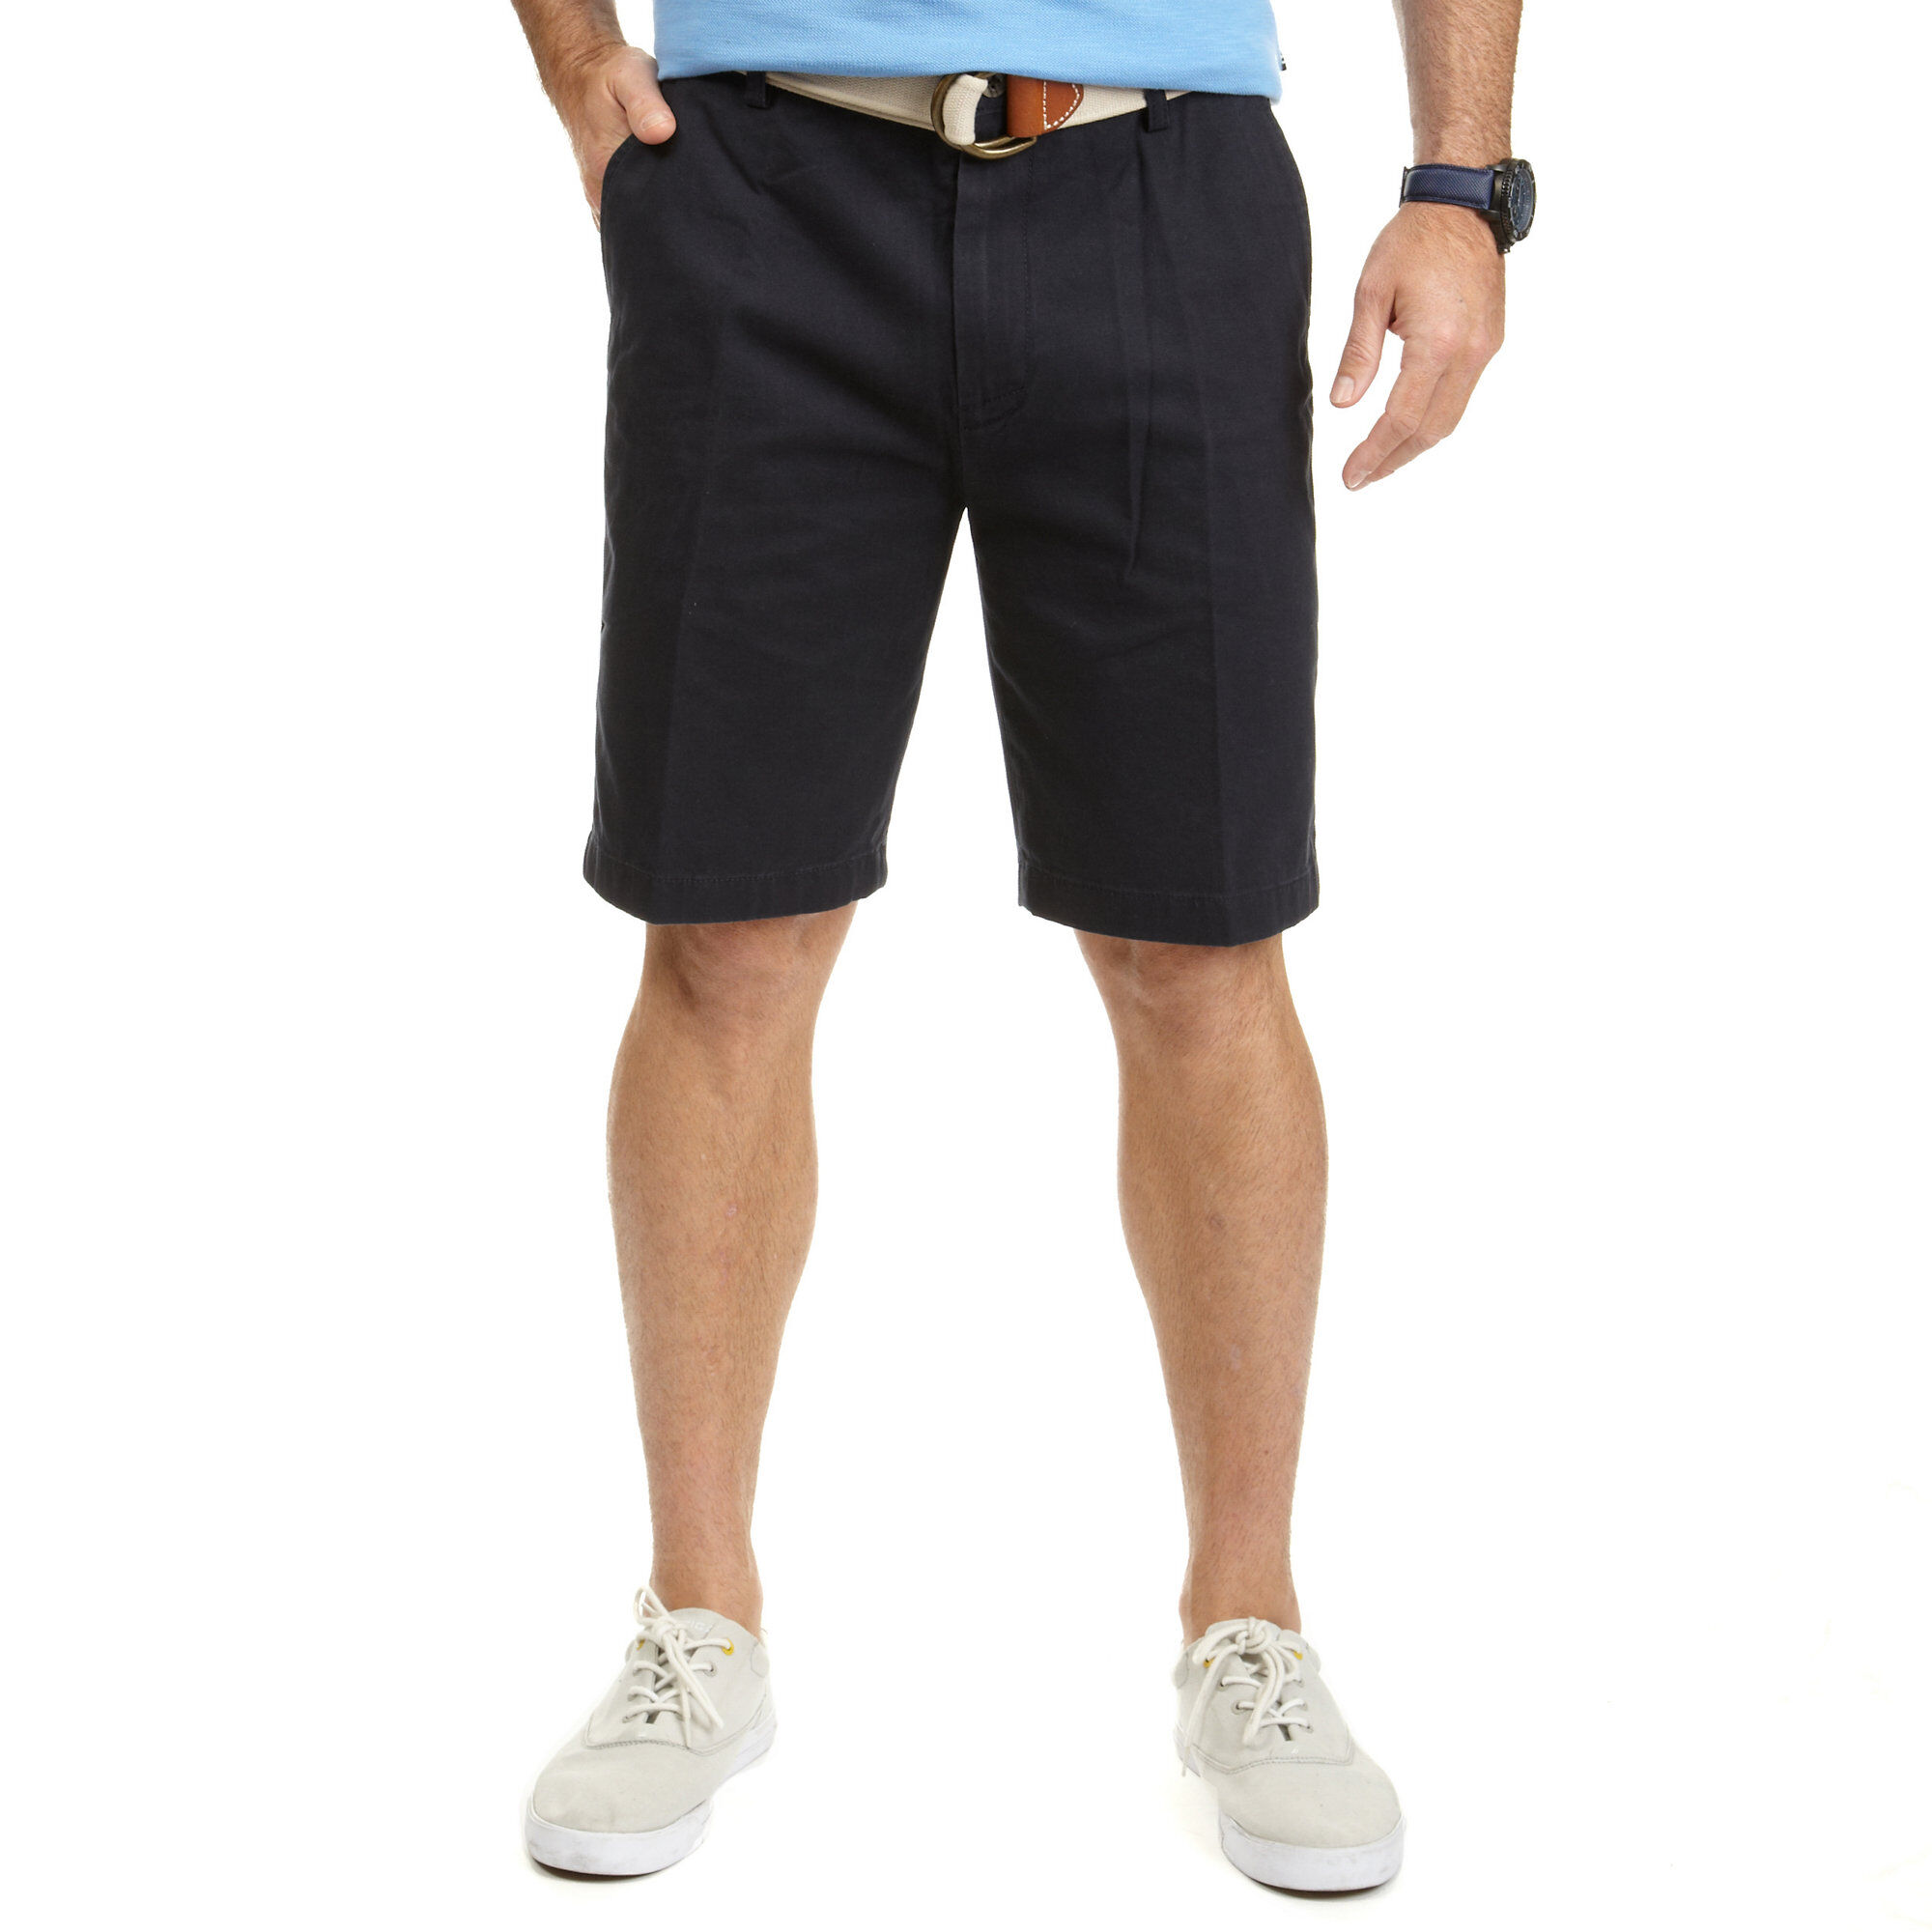 Nautica Mens Big & Tall Flat Front Classic Fit Shorts